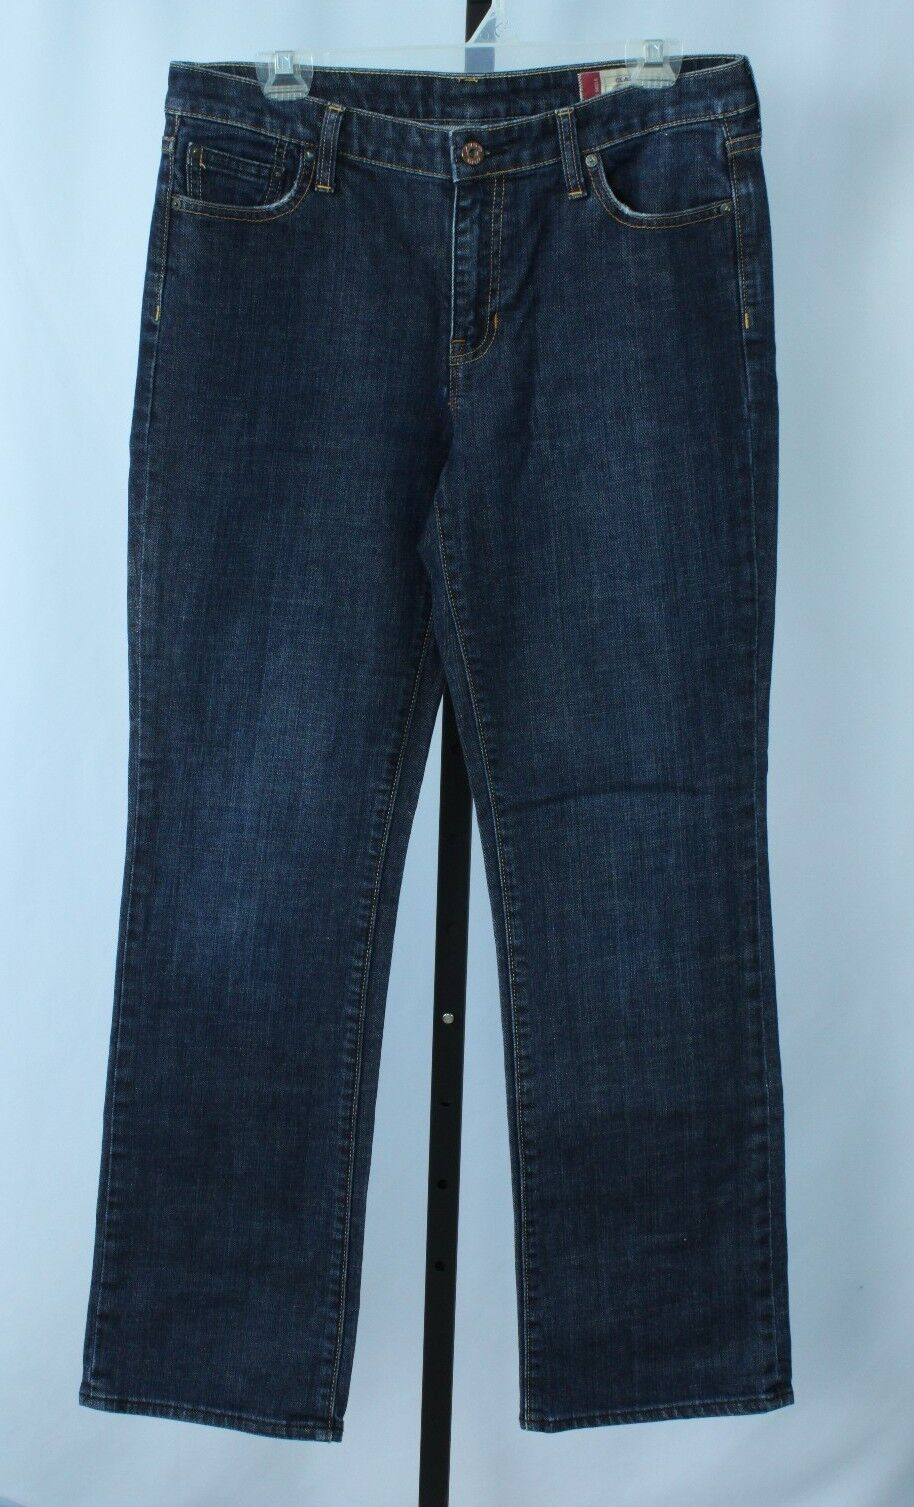 Gap Classic Stretch Size 10R Jeans Womens Denim Cotton  Hand Sanded Rinse